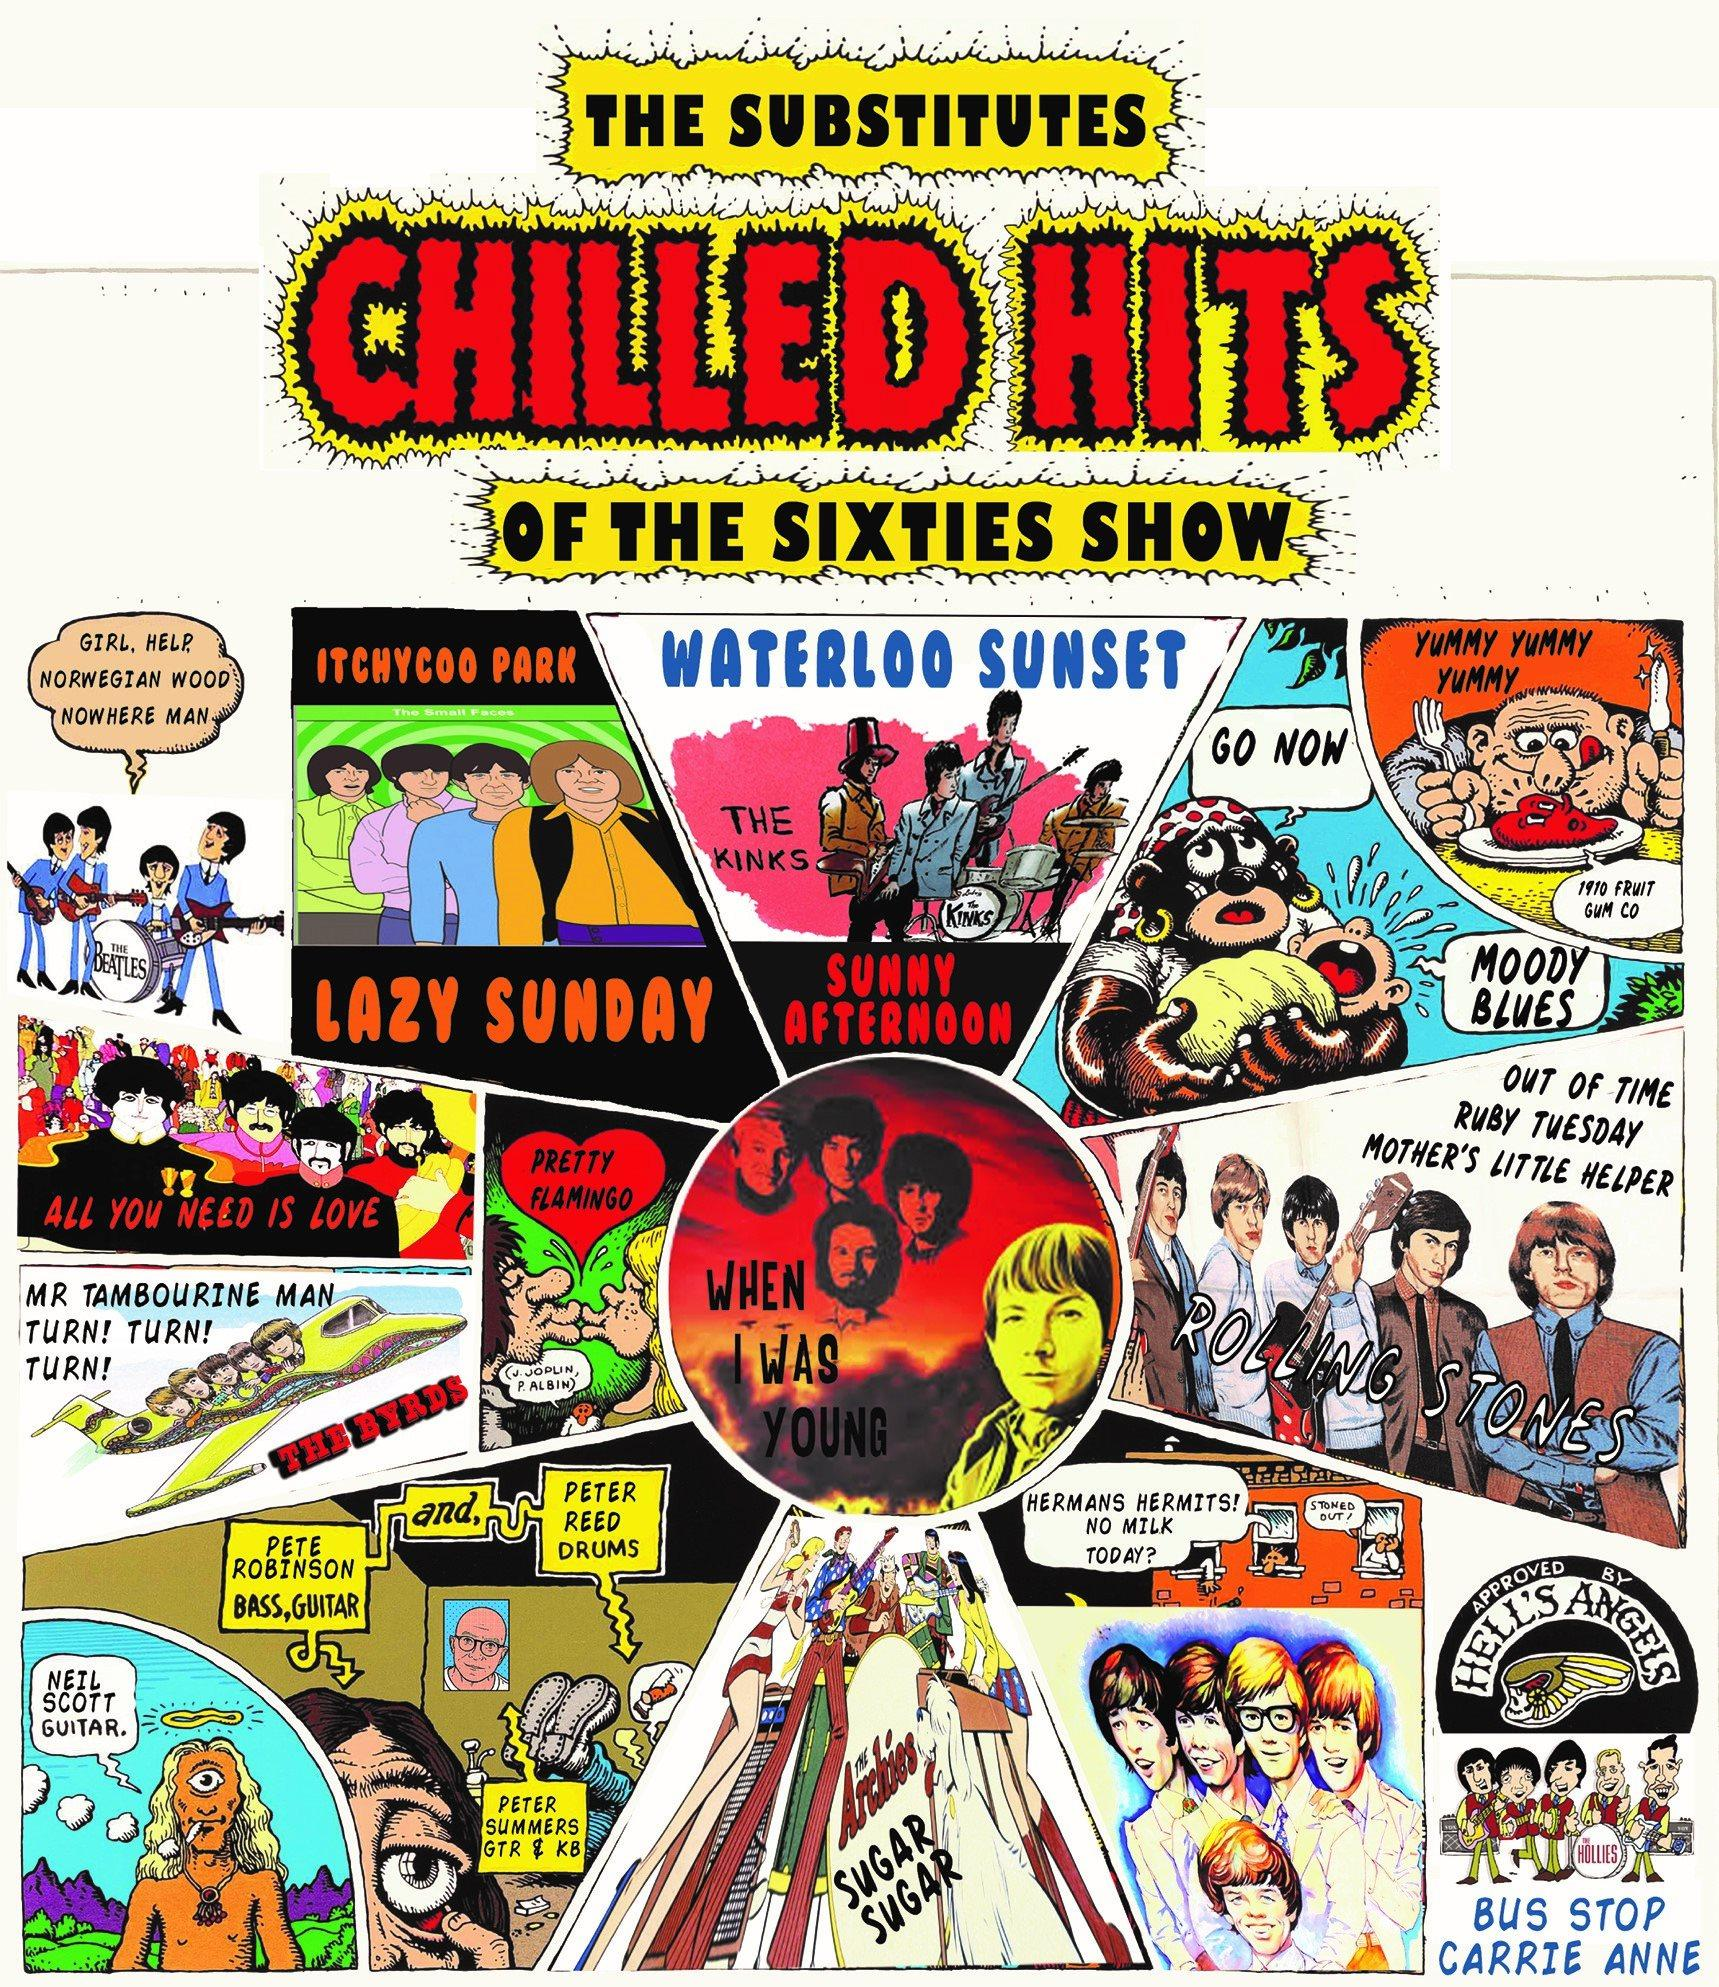 """DINNER & SHOW - The Substitutes """"Chilled Hits"""" Exclusive Show"""